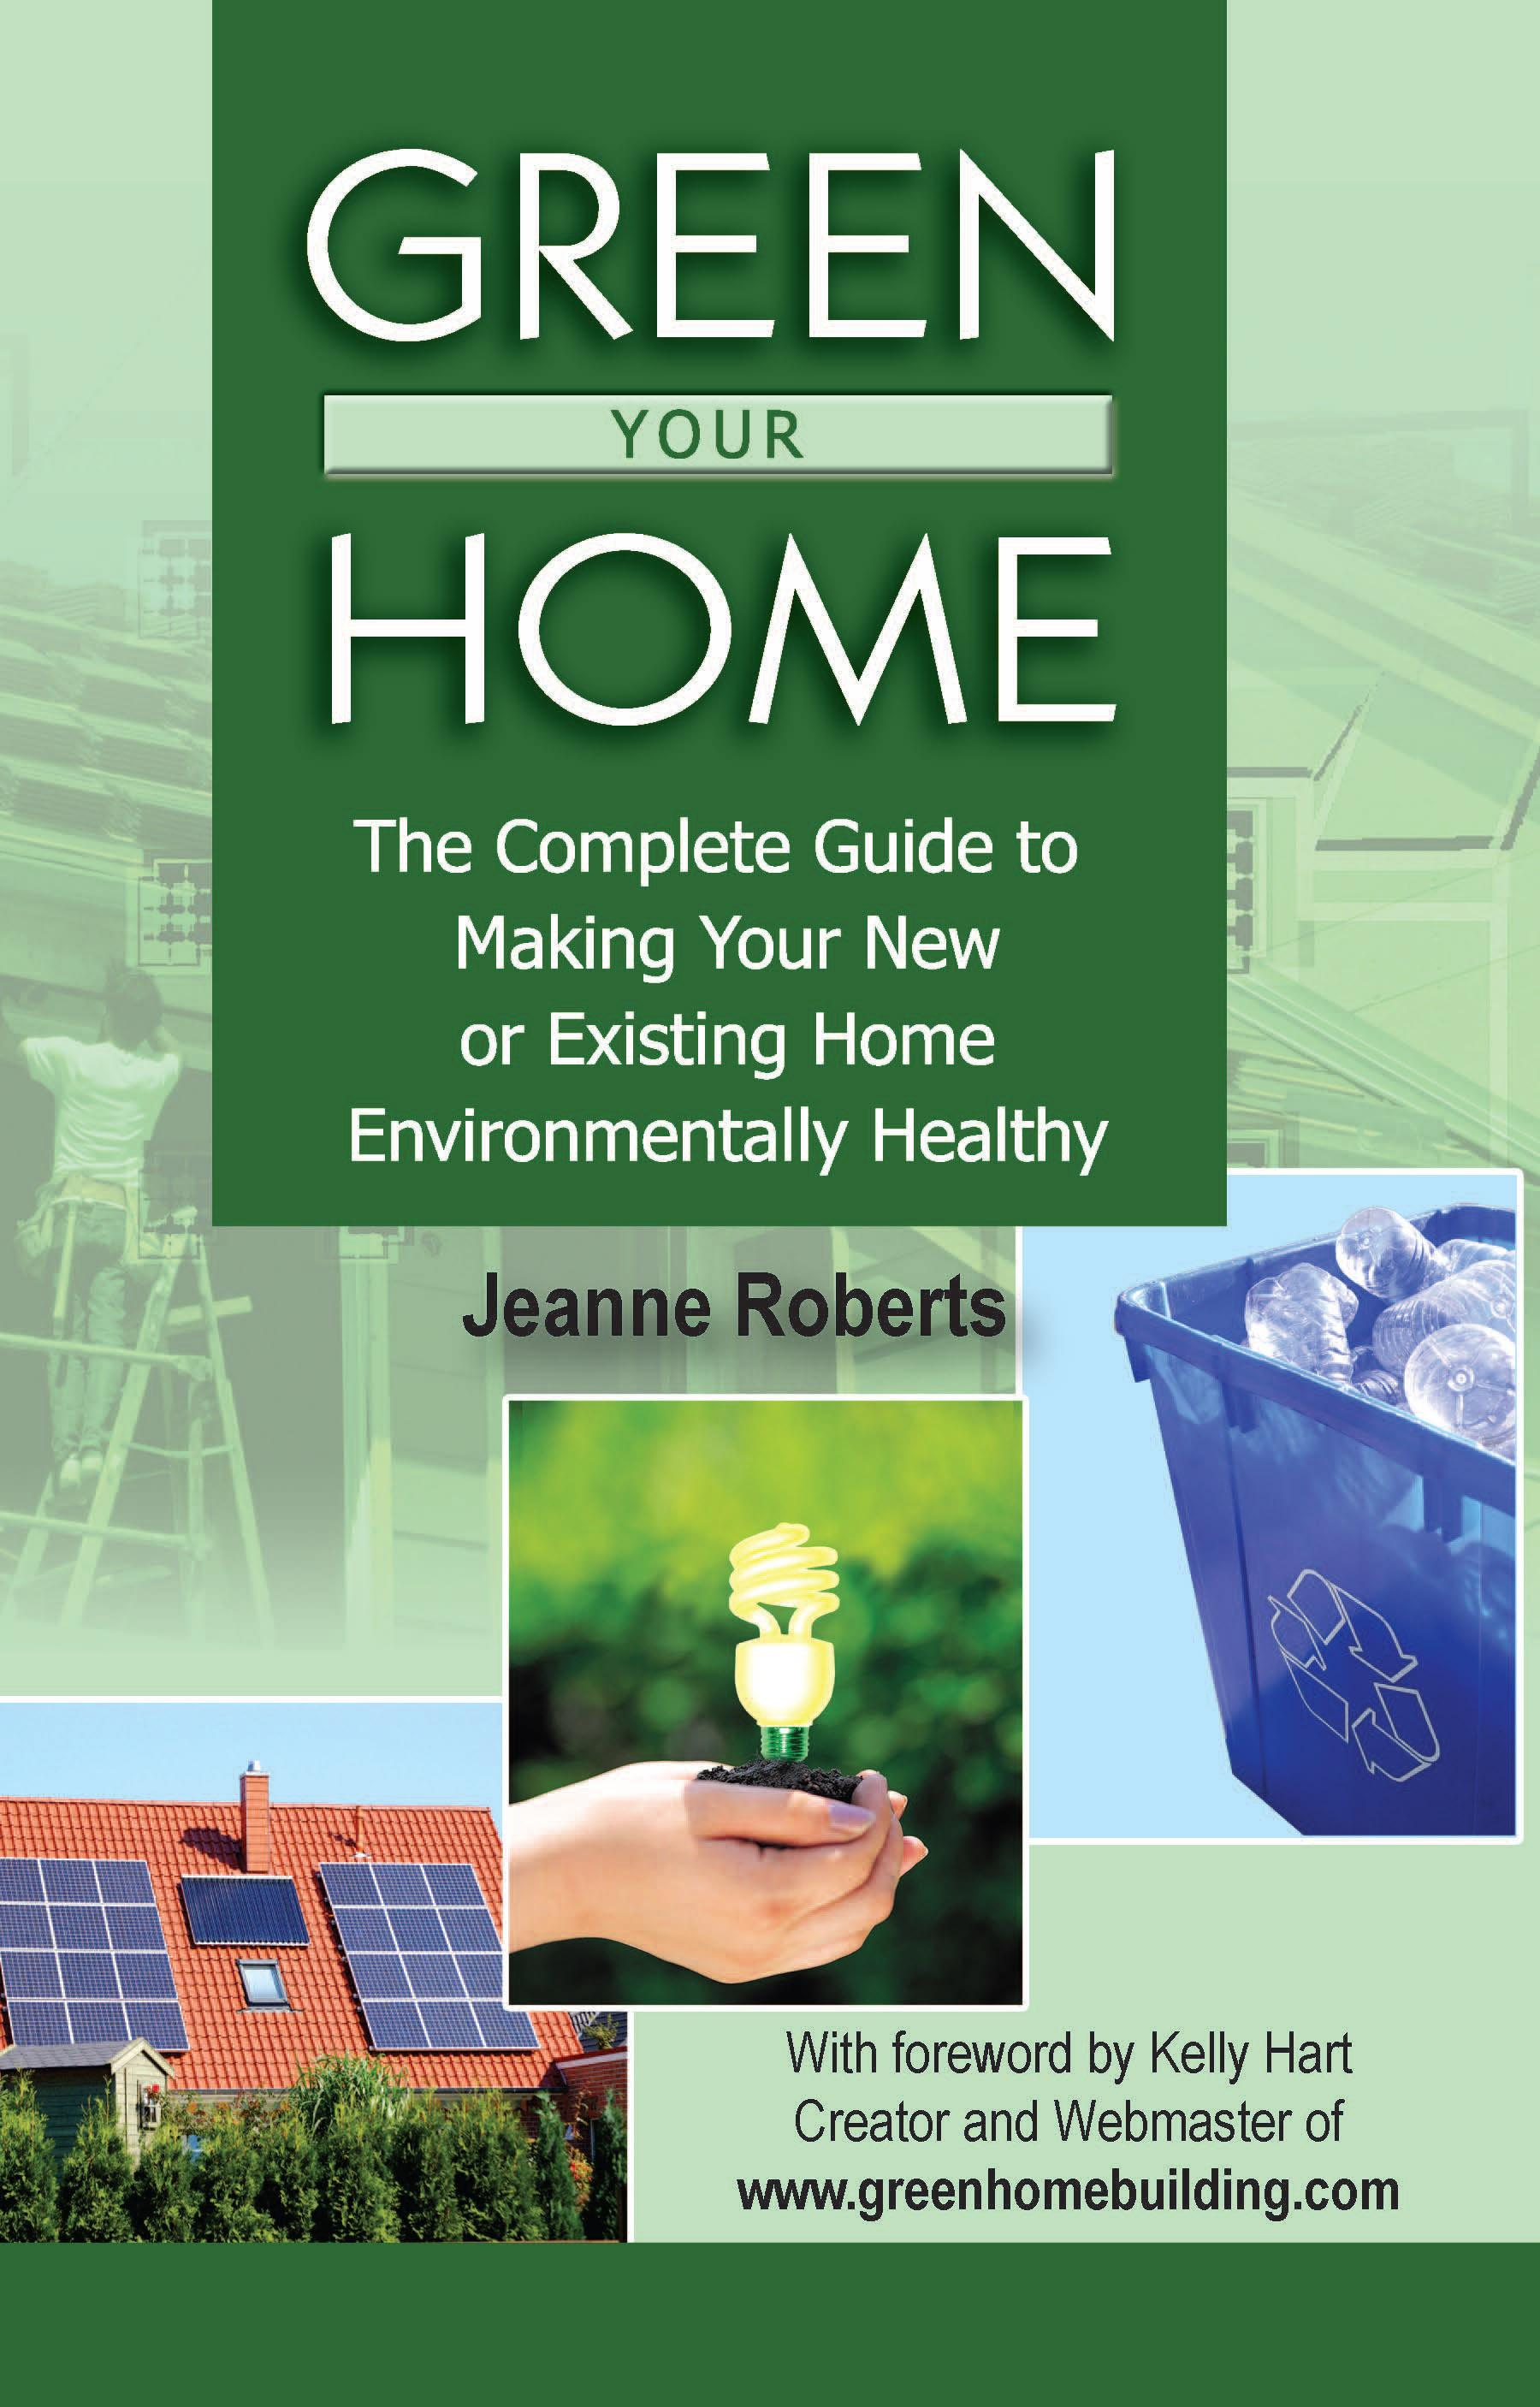 Green Your Home: The Complete Guide to Making Your New or Existing Home Environmentally Healthy EB2370003890891